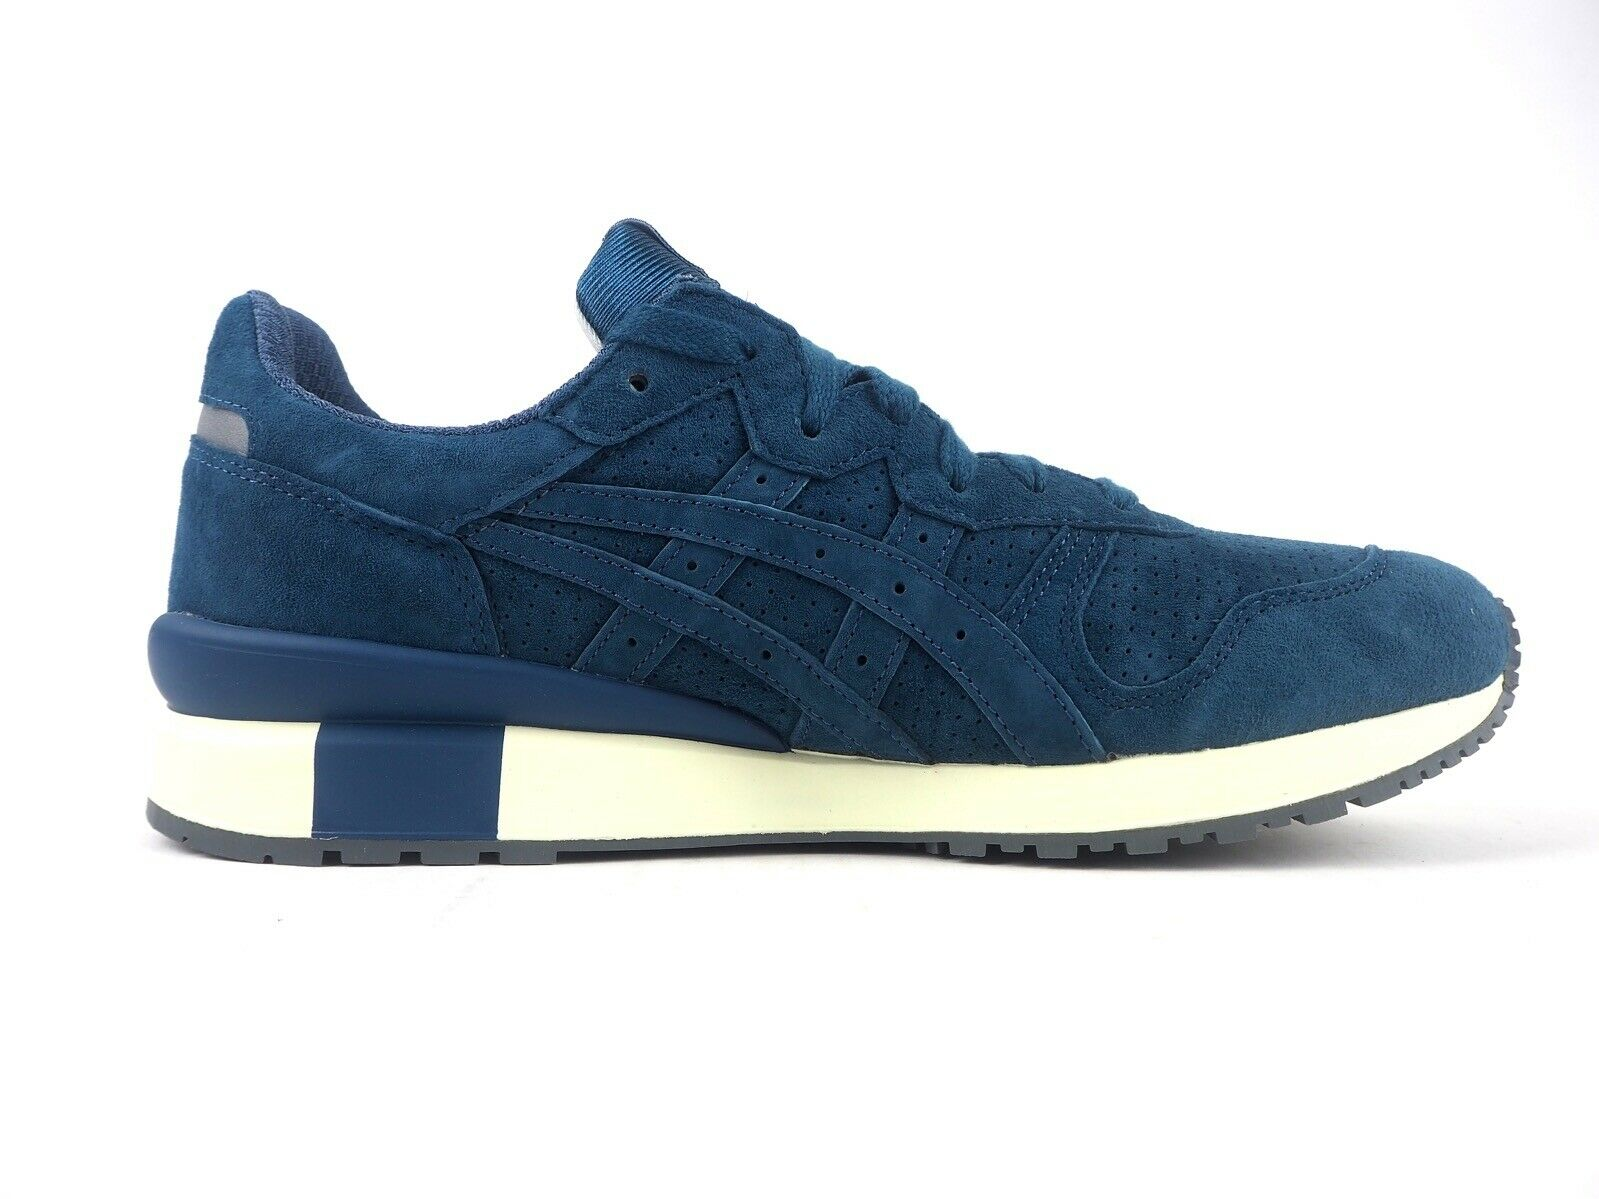 Onitsuka Tiger Tiger Ally D701L 4545 Ink bluee Lace Up Leather Casual Trainers